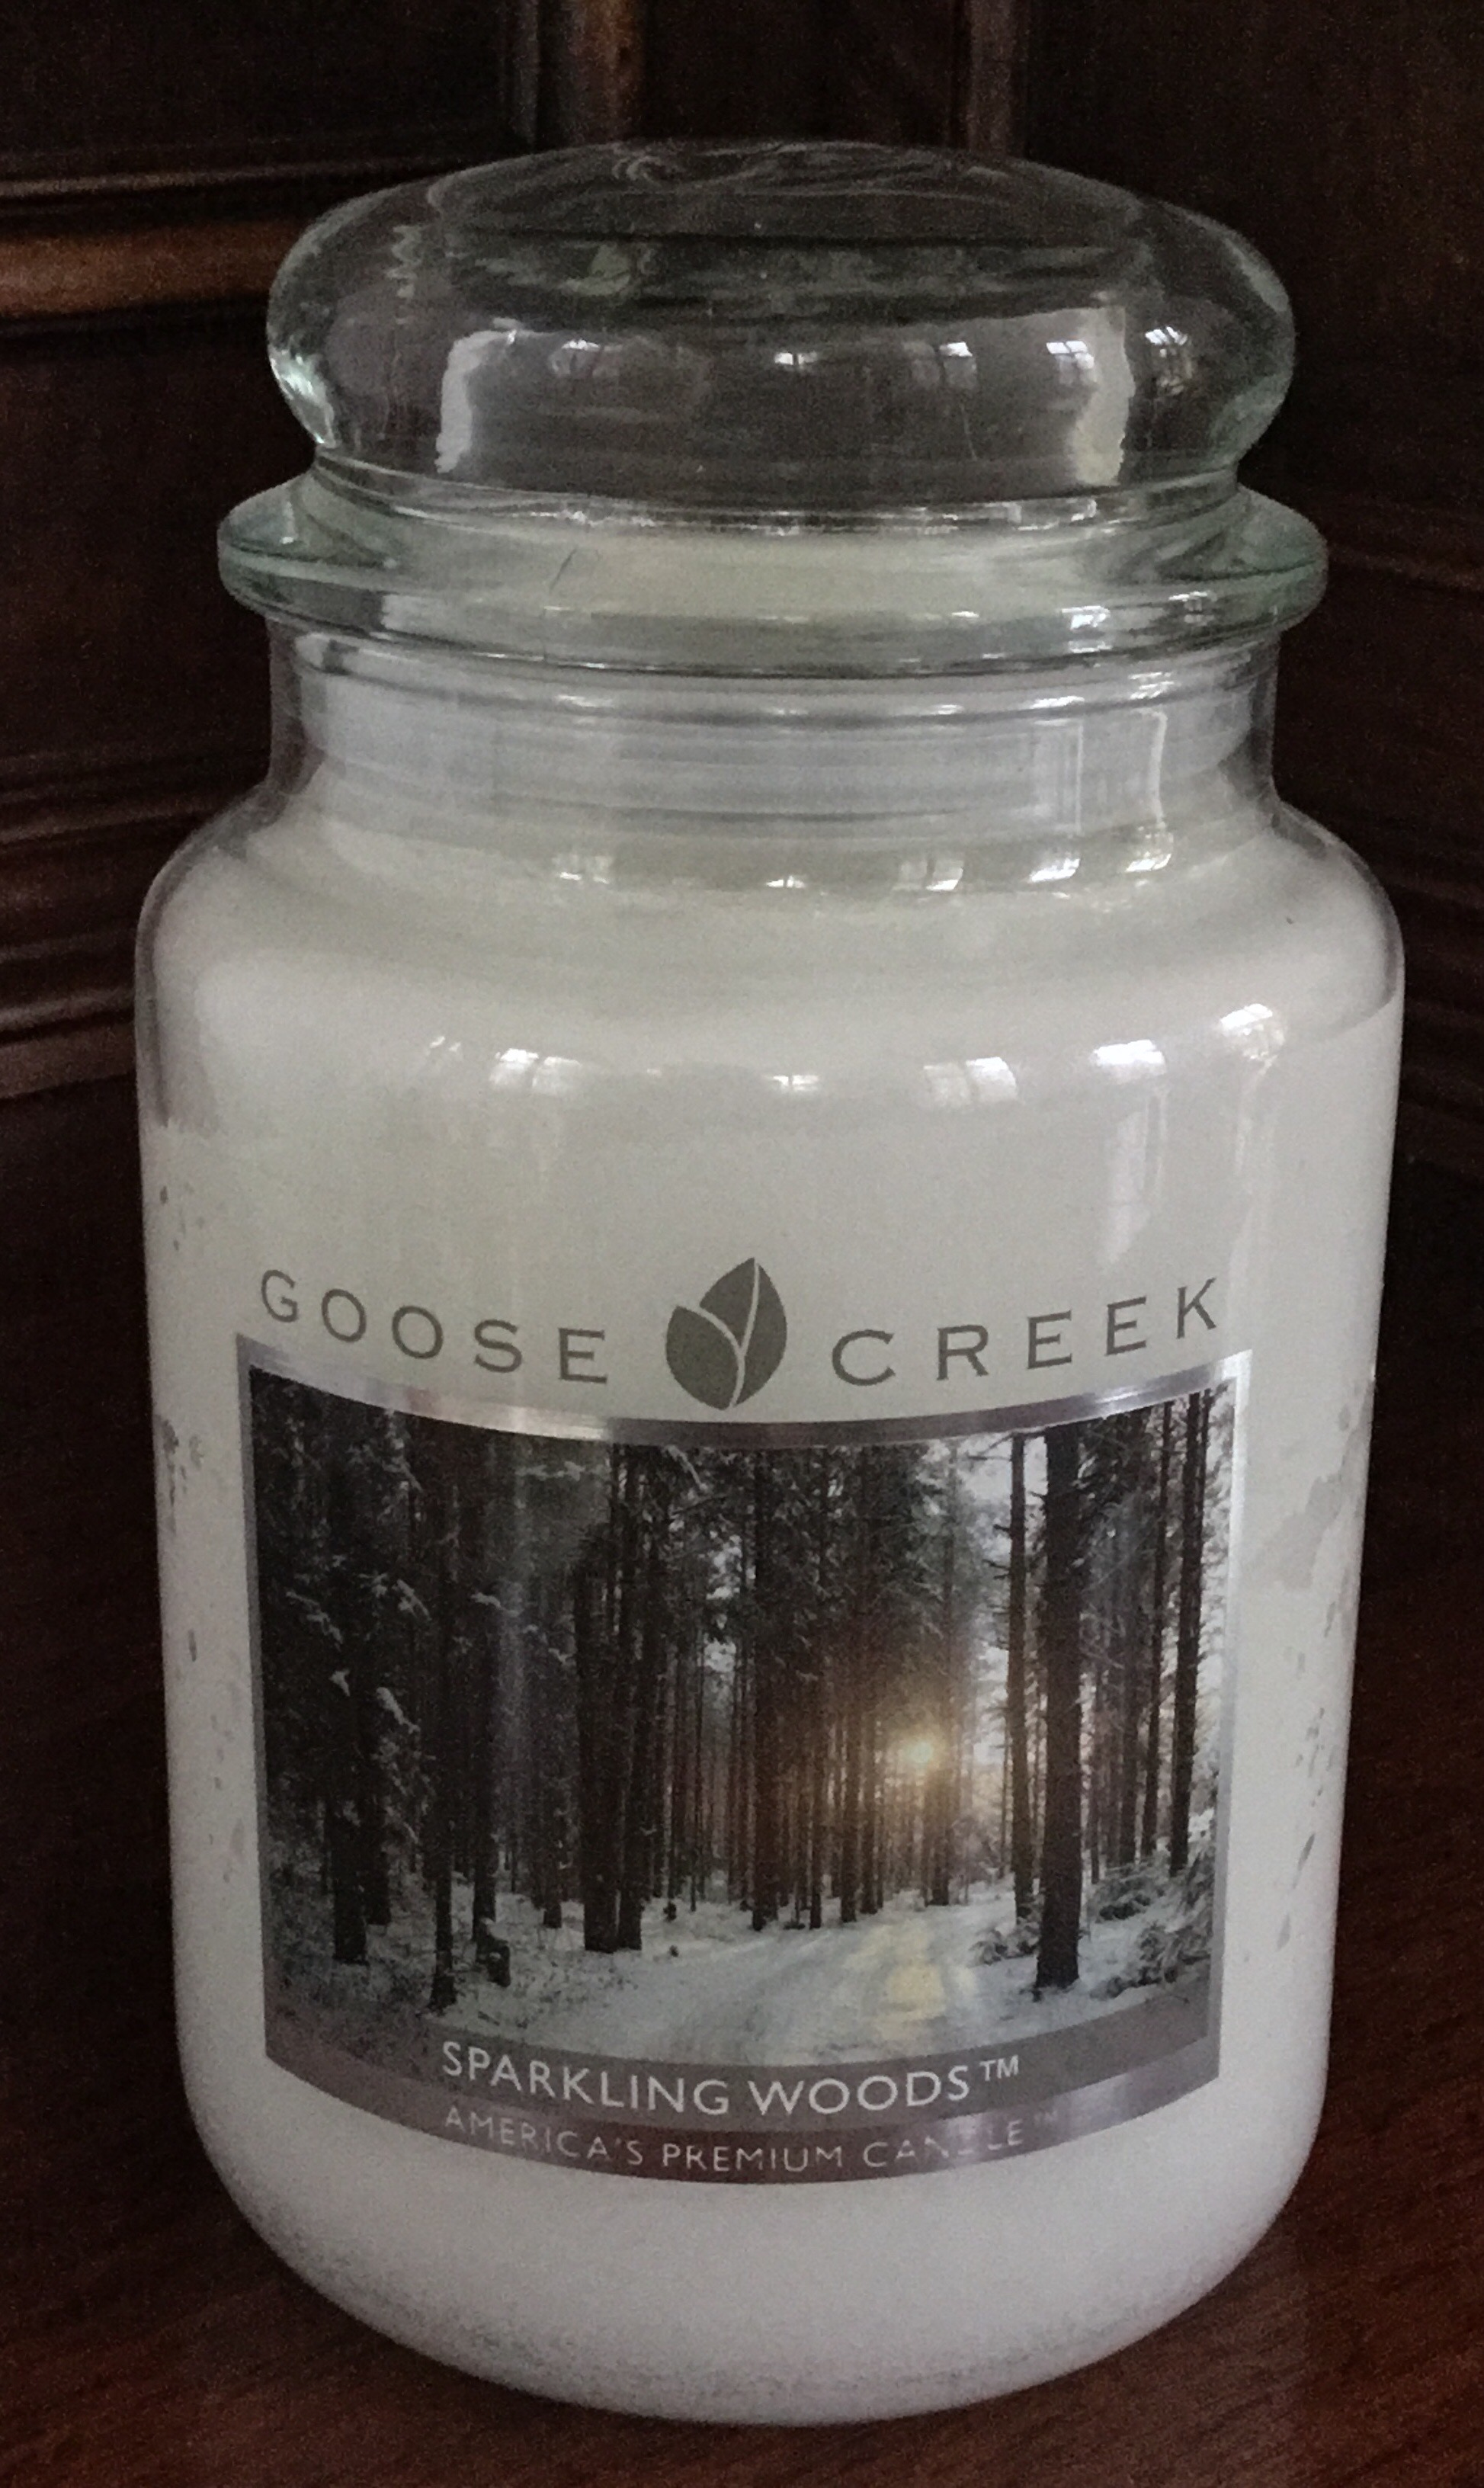 Goose Creek, Sparkling Woods Candle